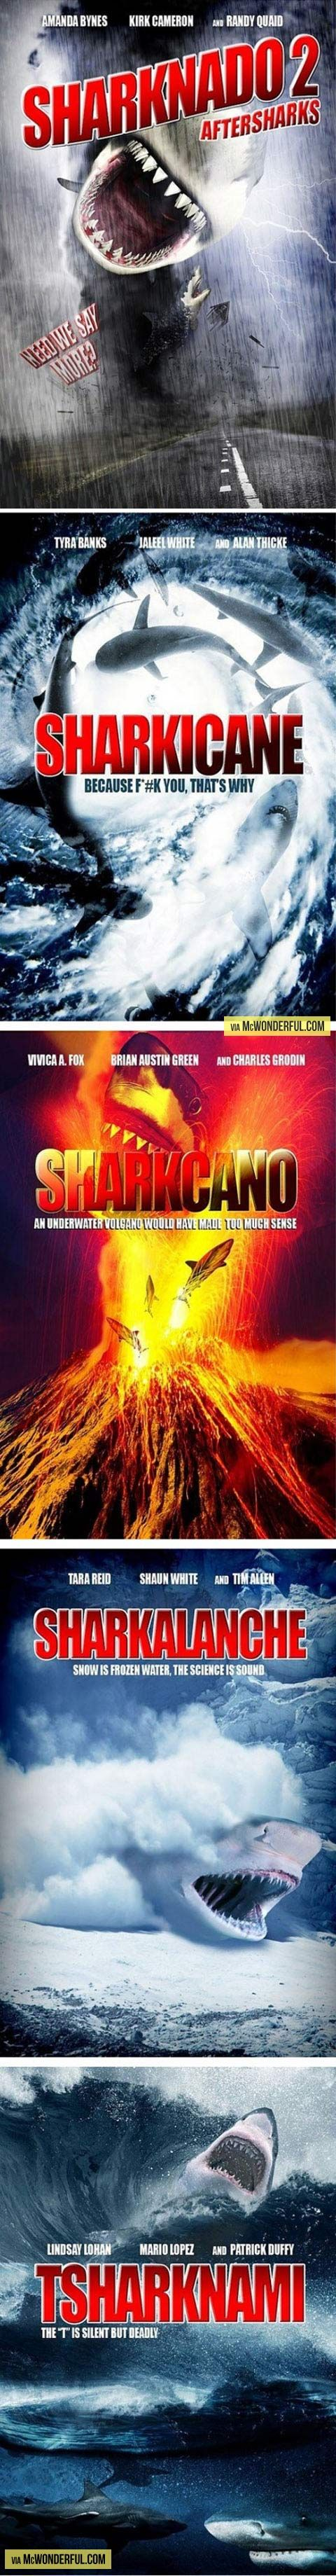 funny-Shark-poster-secuel-movies-Sharknado